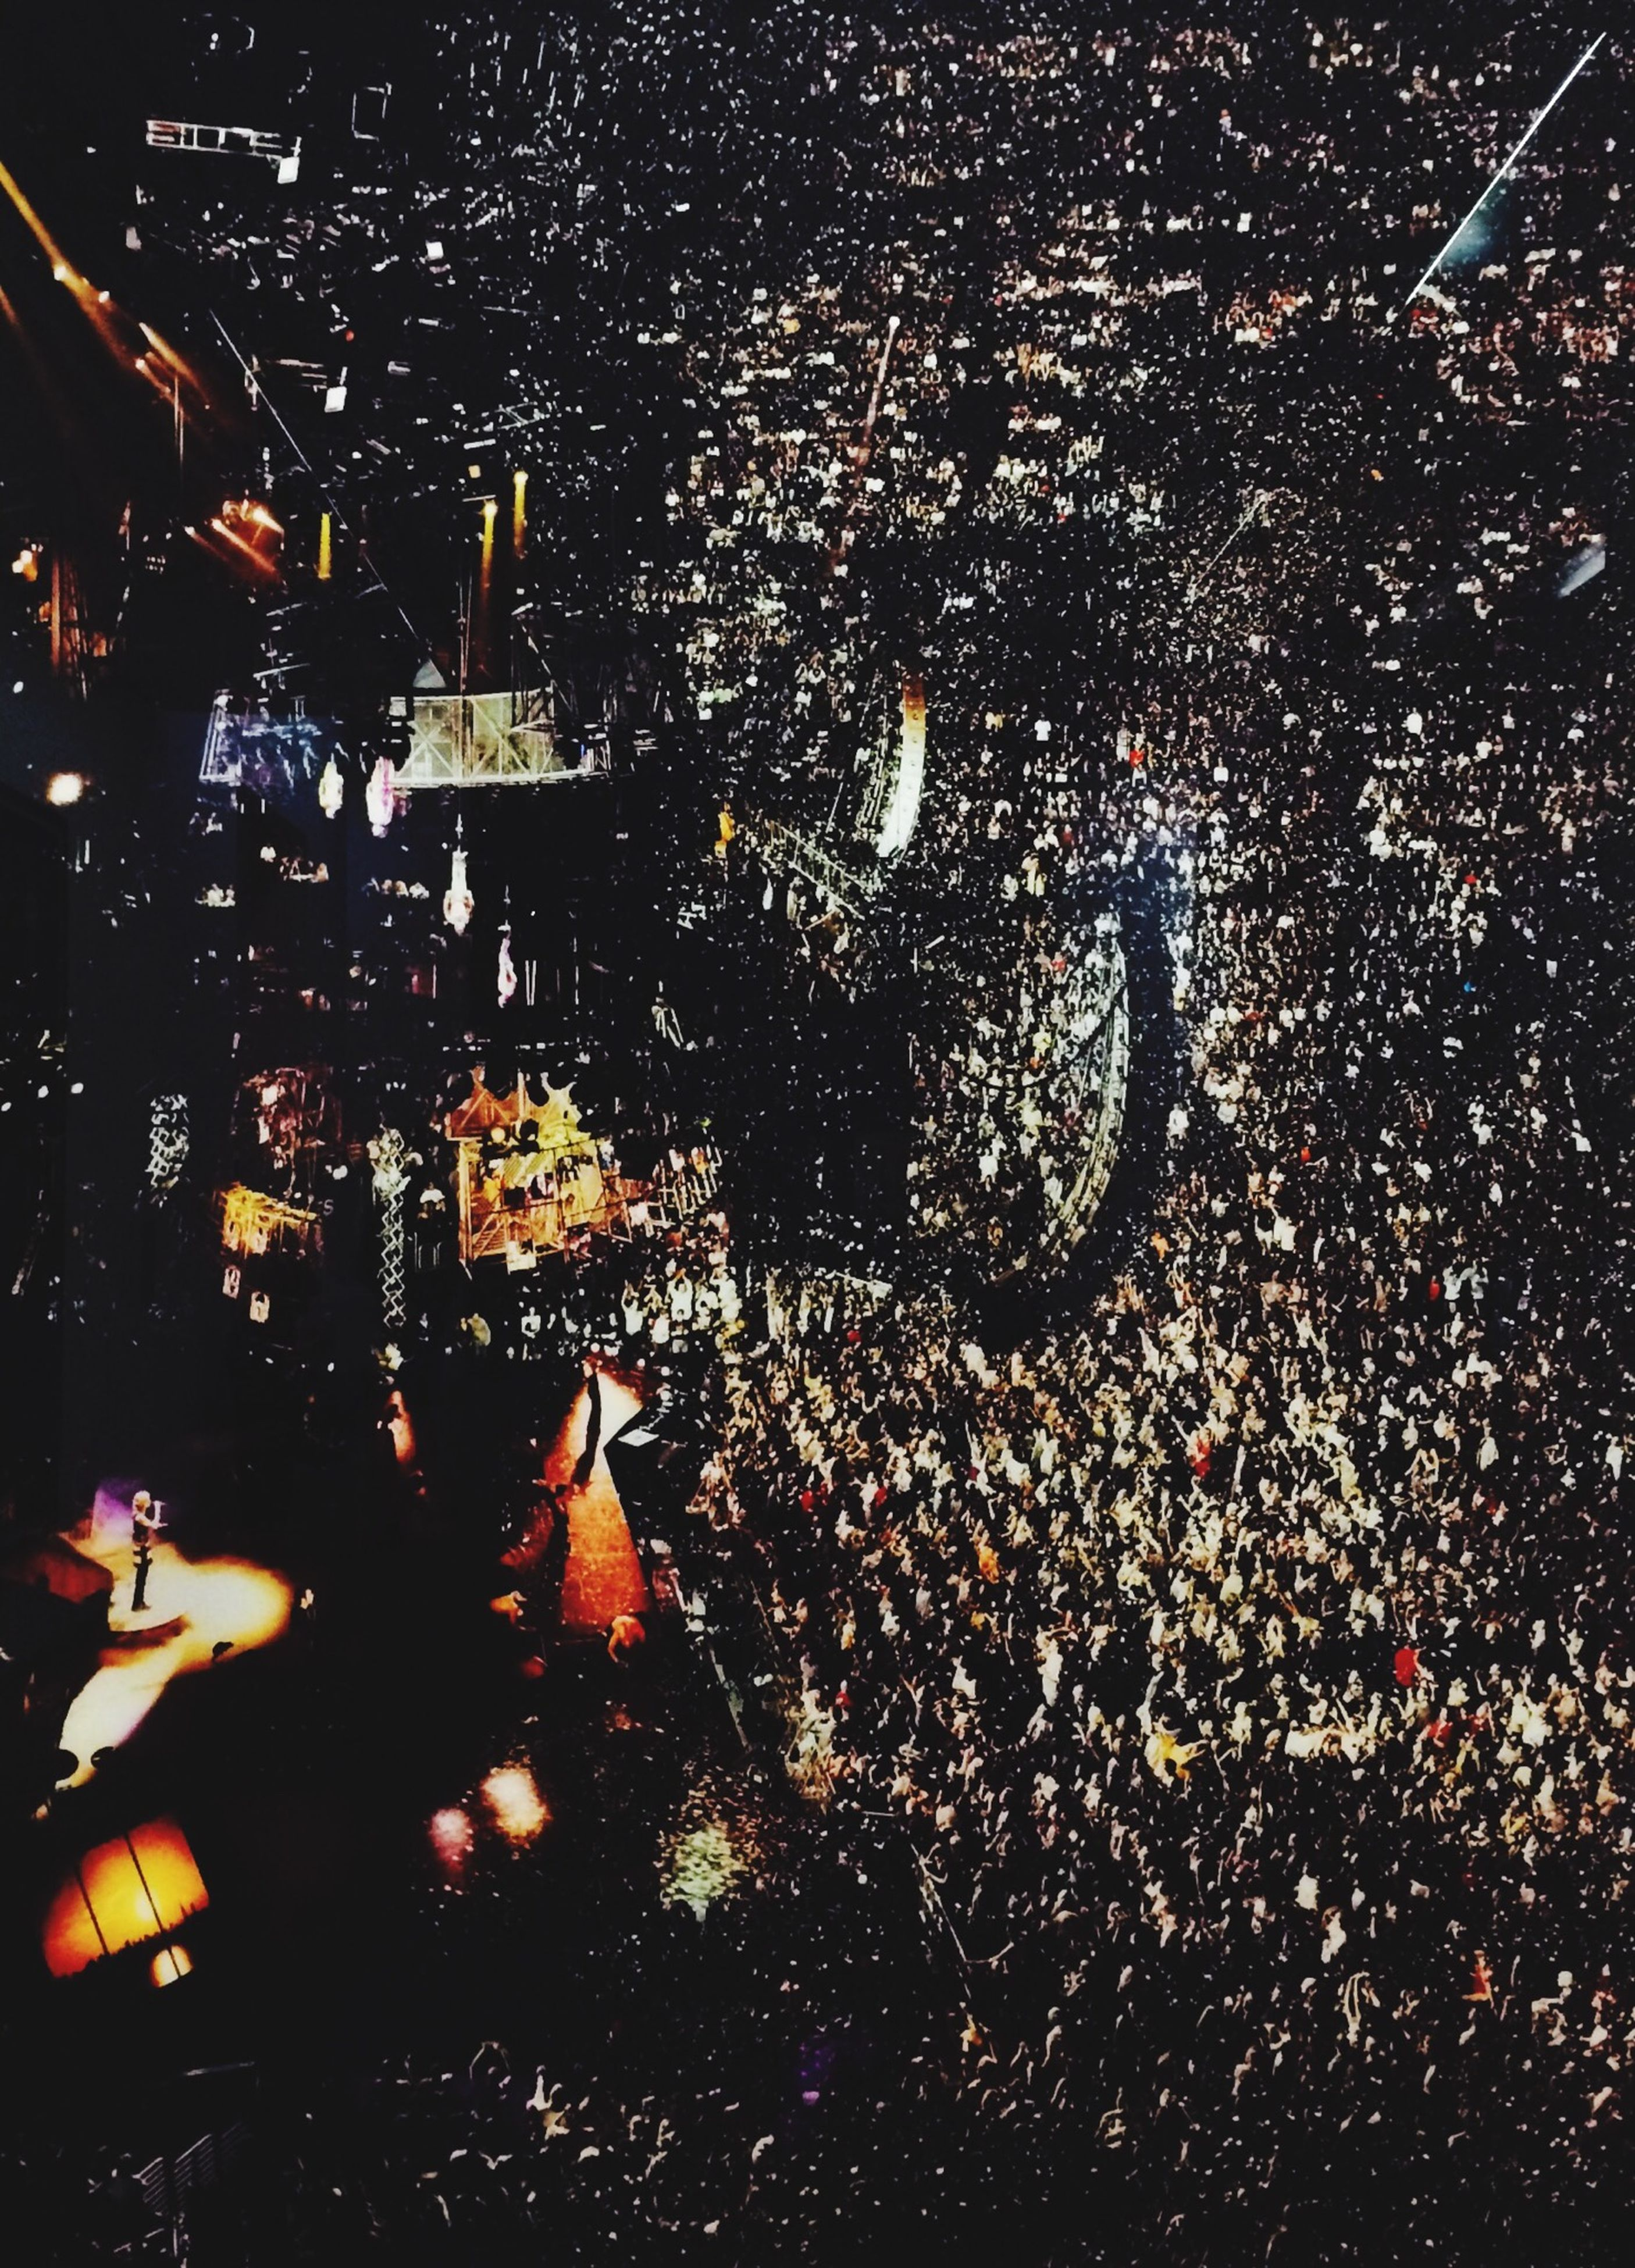 night, illuminated, high angle view, indoors, city, crowded, cityscape, architecture, building exterior, built structure, lighting equipment, dark, aerial view, abundance, street, full frame, crowd, elevated view, light - natural phenomenon